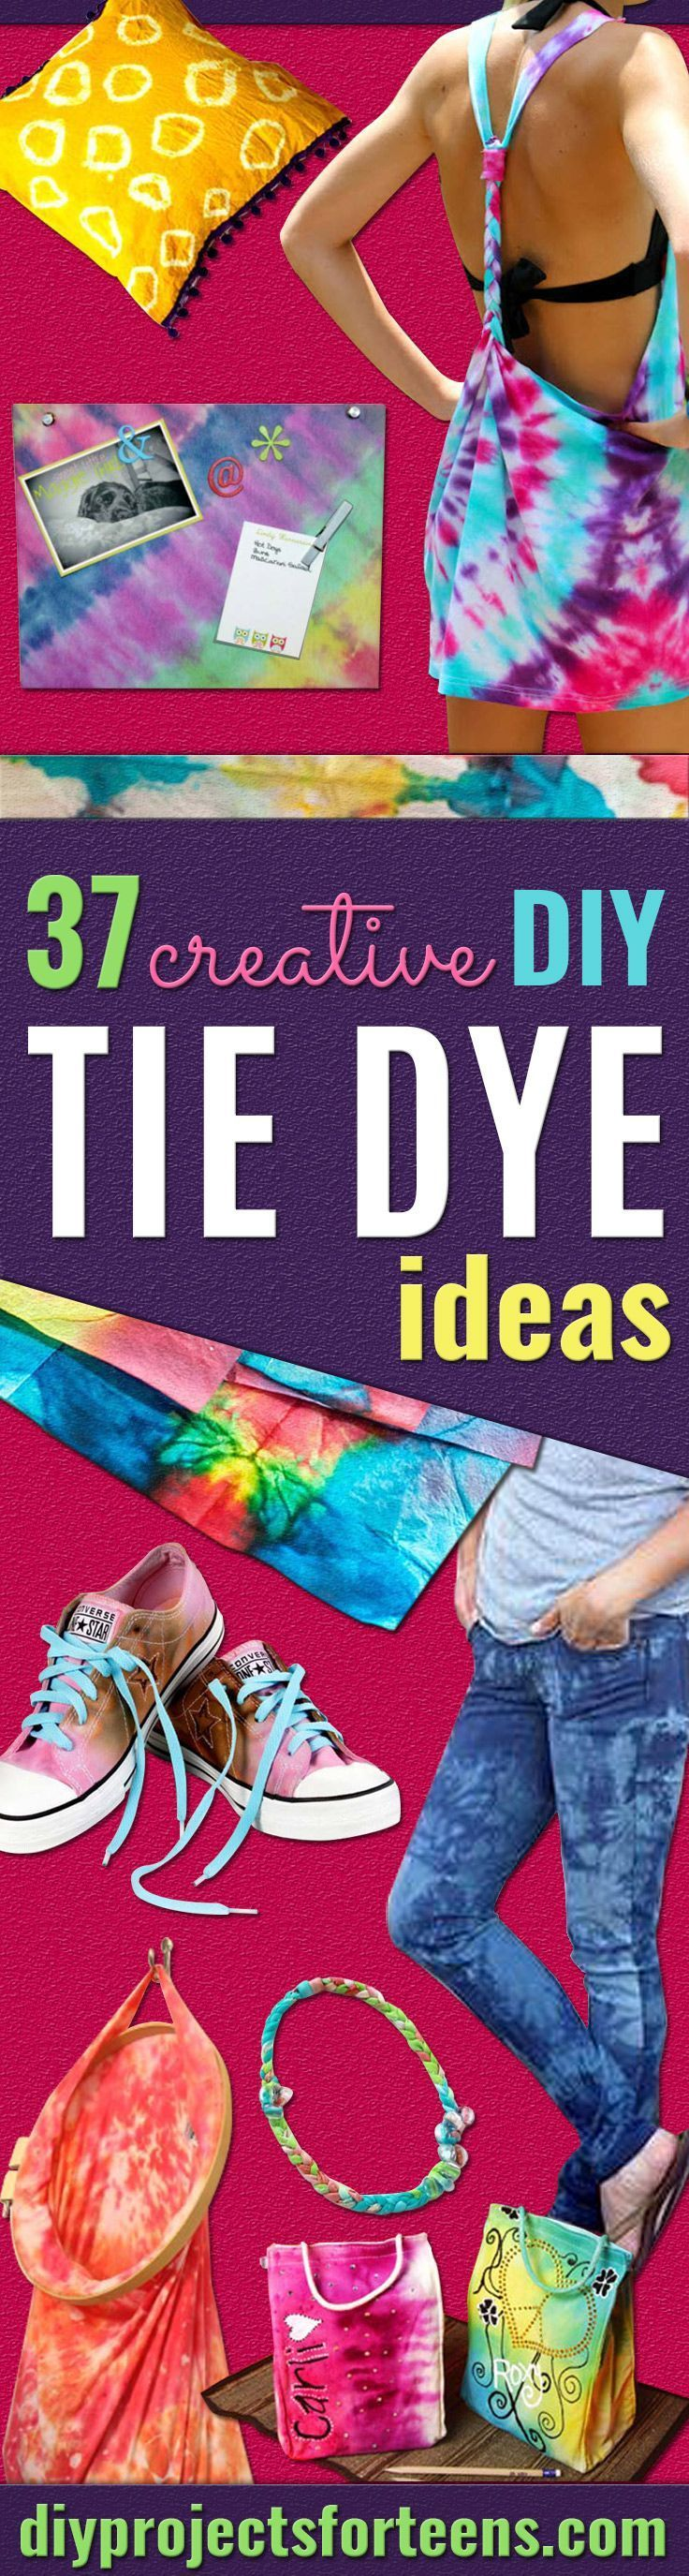 DIY Tie Dye Projects and Crafts -  Cool Tie Dye Ideas for Shirts, Socks, Paint, Sheets, Sharpie, Food and Recipes, Bags, Tshirt and Shoes - Fun Projects and Gifts for Adults, Teens and Teenagers http://diyprojectsforteens.com/diy-tie-dye-ideas